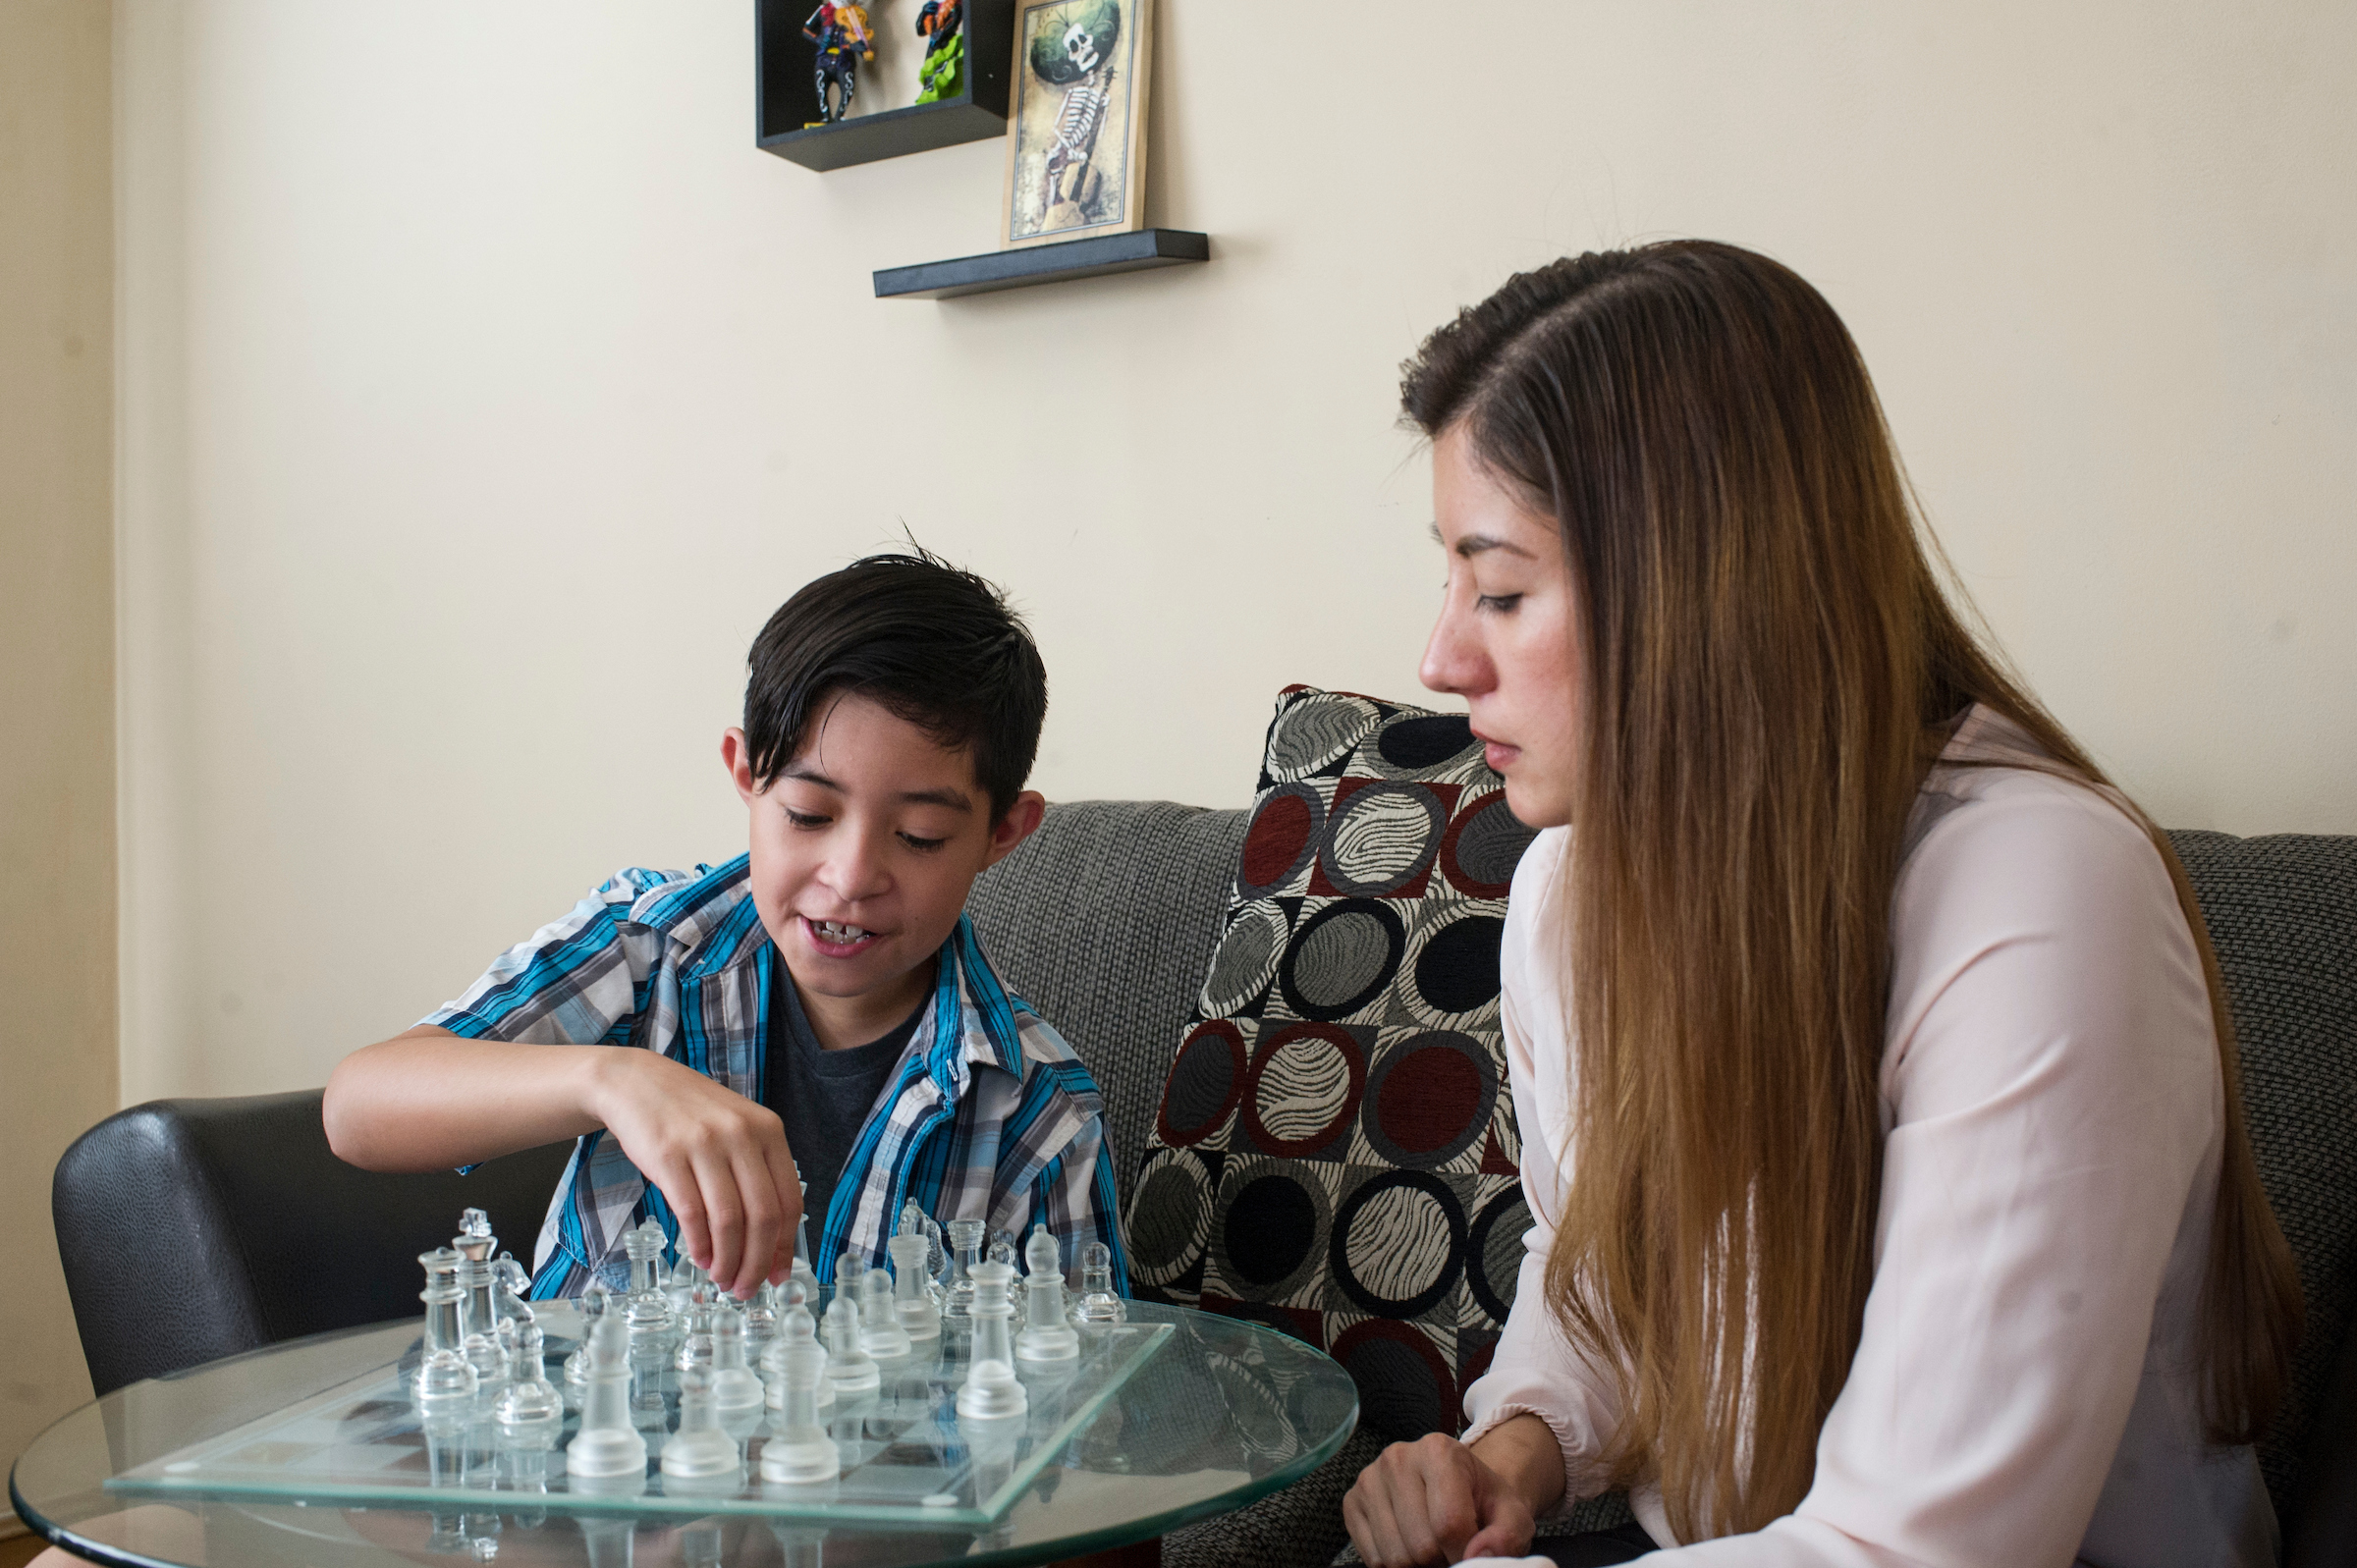 Julie Rodriguez and her son play a game of chess. (Marc Monaghan for WBEZ)